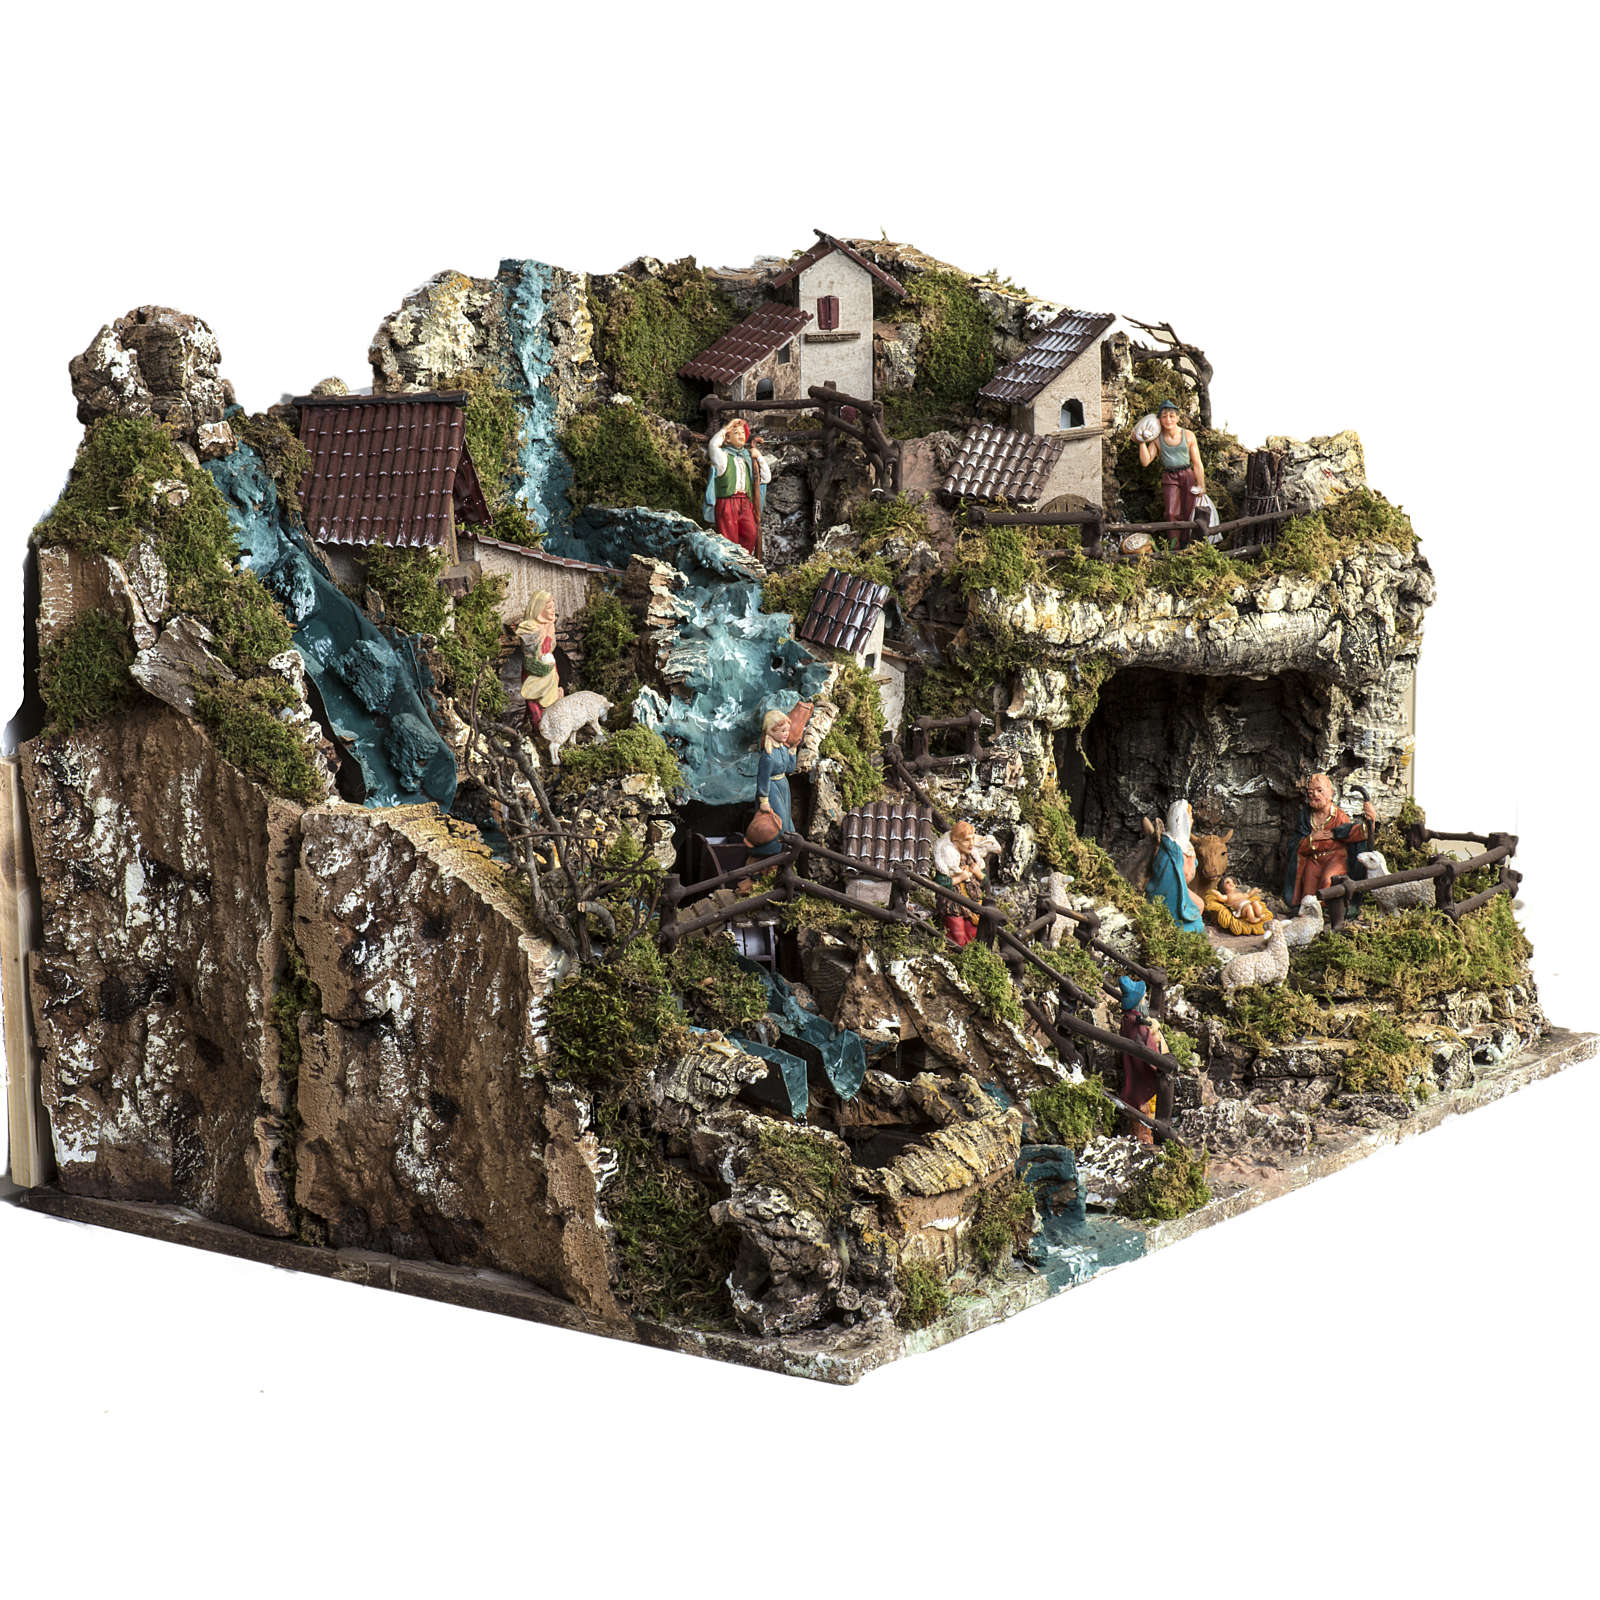 Nativity village, illuminated with waterfall, stable and mill 4